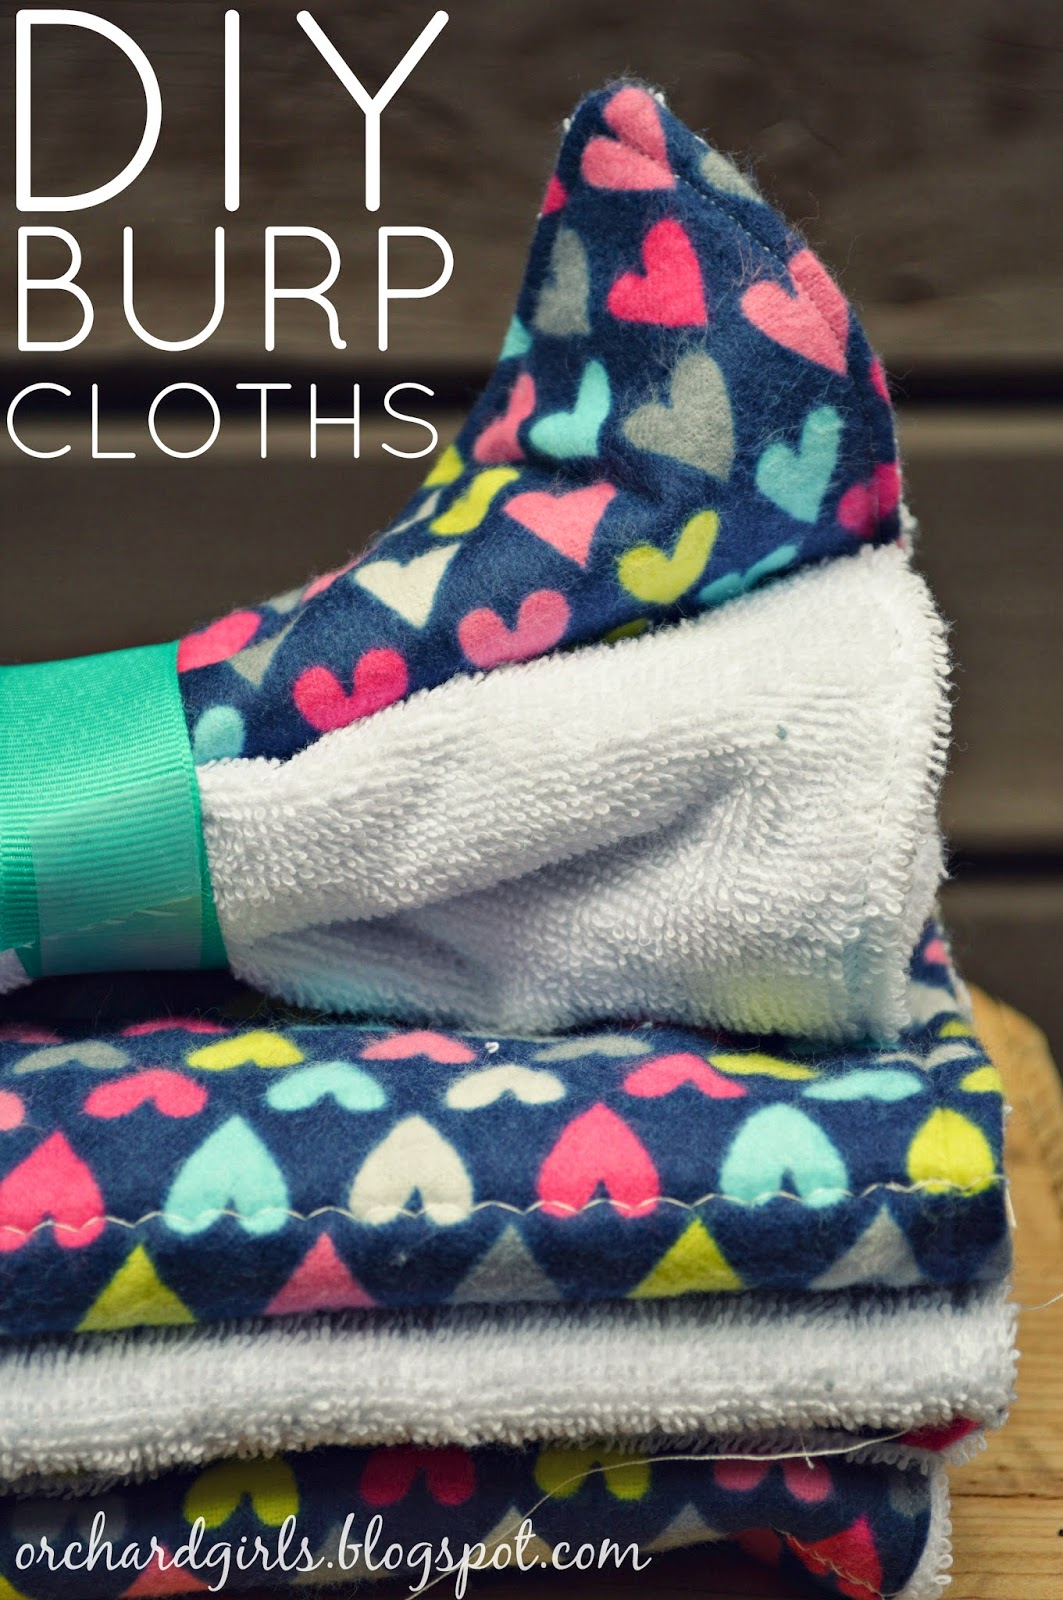 Easy DIY Burp Cloths